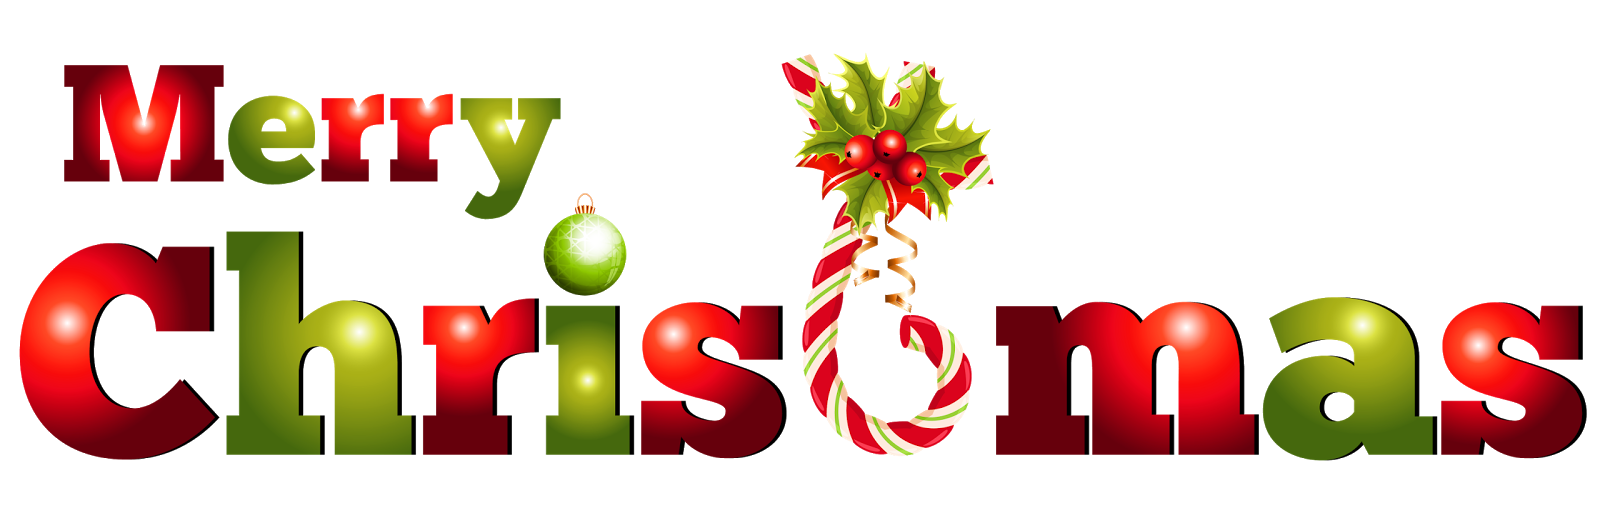 Cute merry christmas clipart image royalty free stock Xmas Day Clipart image royalty free stock